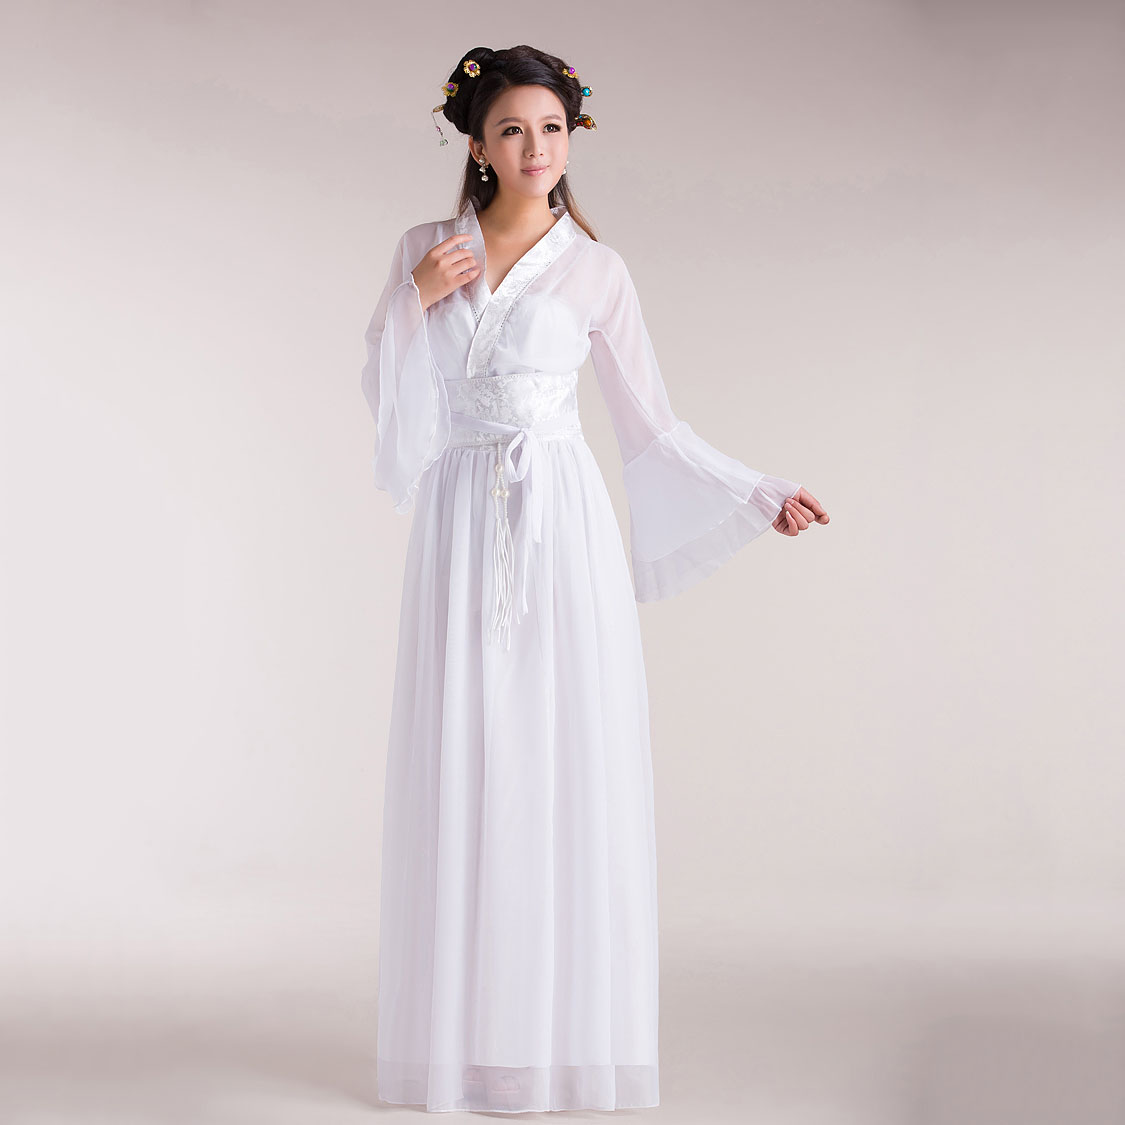 Women's Adult Ethnic Classical Dance Costumes Chinese Style Elegant White/Red Costume Performance Hanfu Clothing For Girls